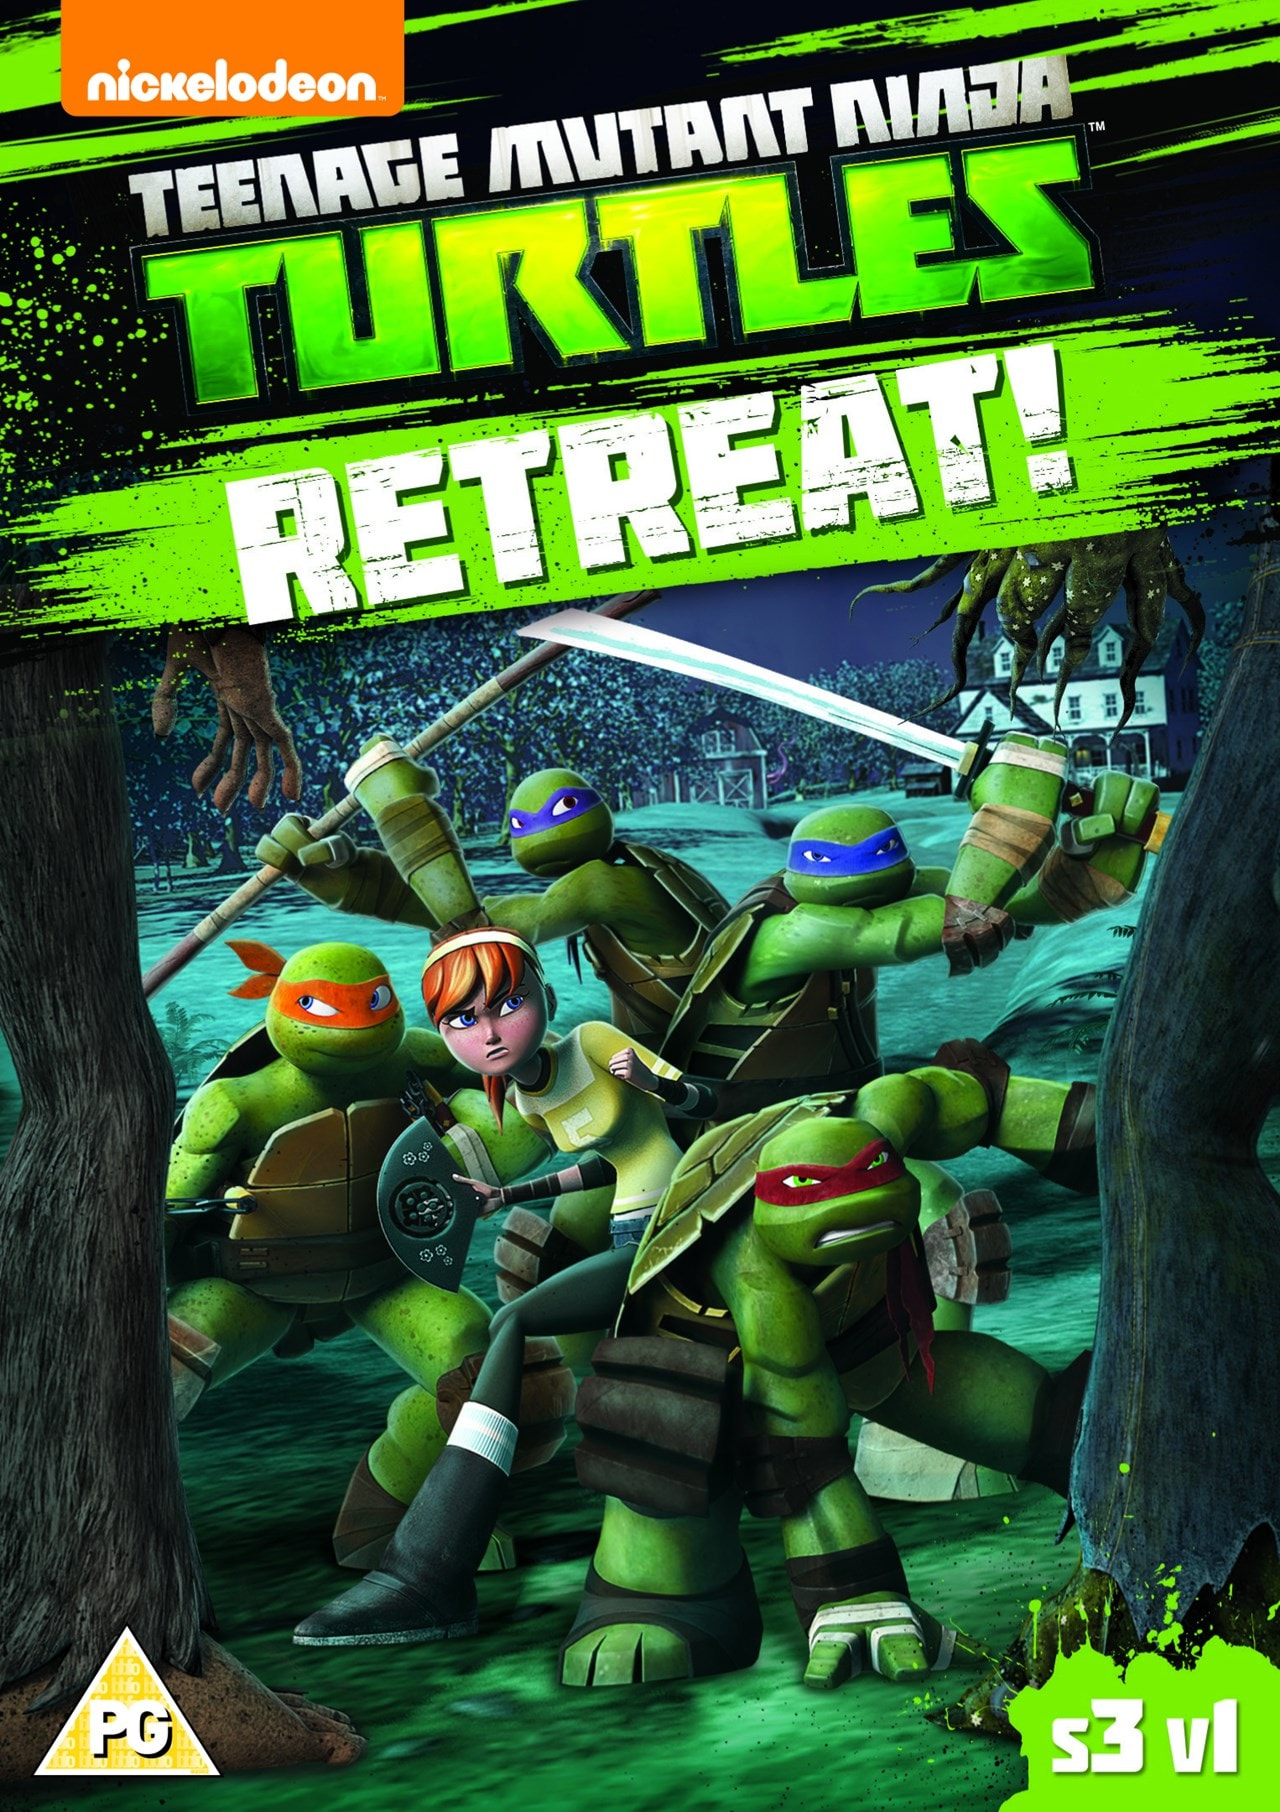 Teenage Mutant Ninja Turtles: Retreat! - Season 3 Volume 1 - 1